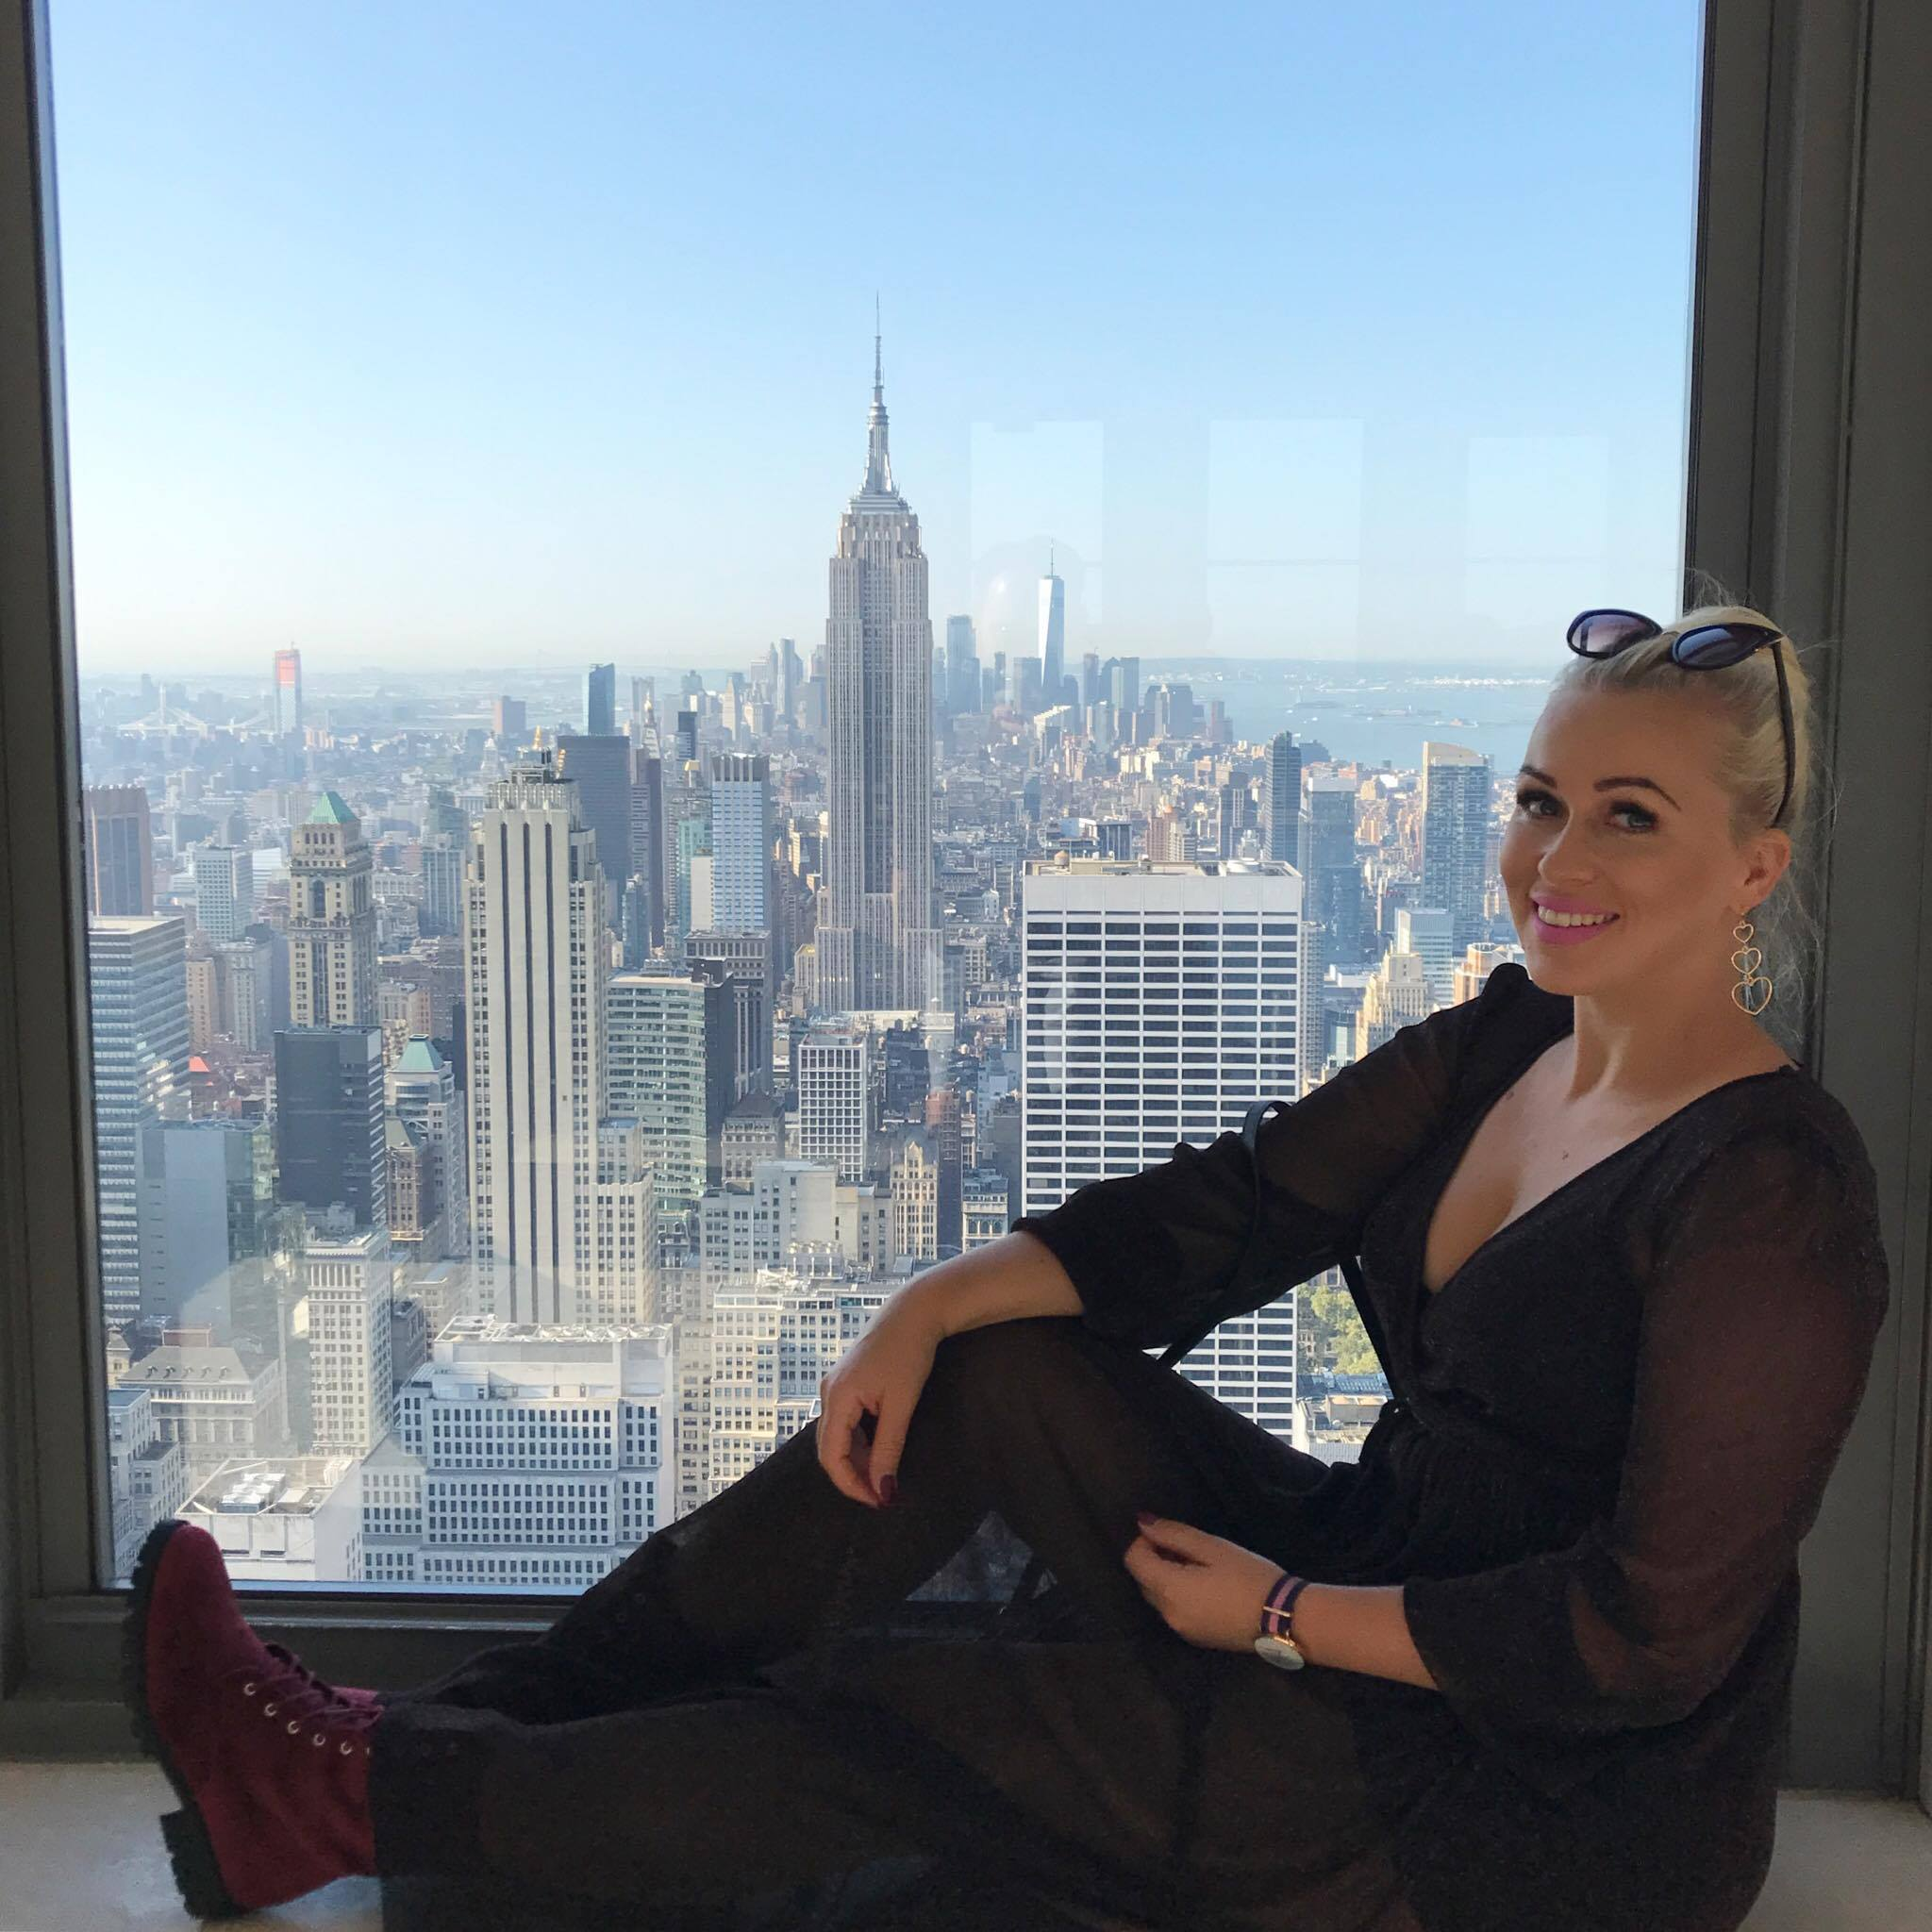 nowy jork, new york, NY, manhattan, top of the rock